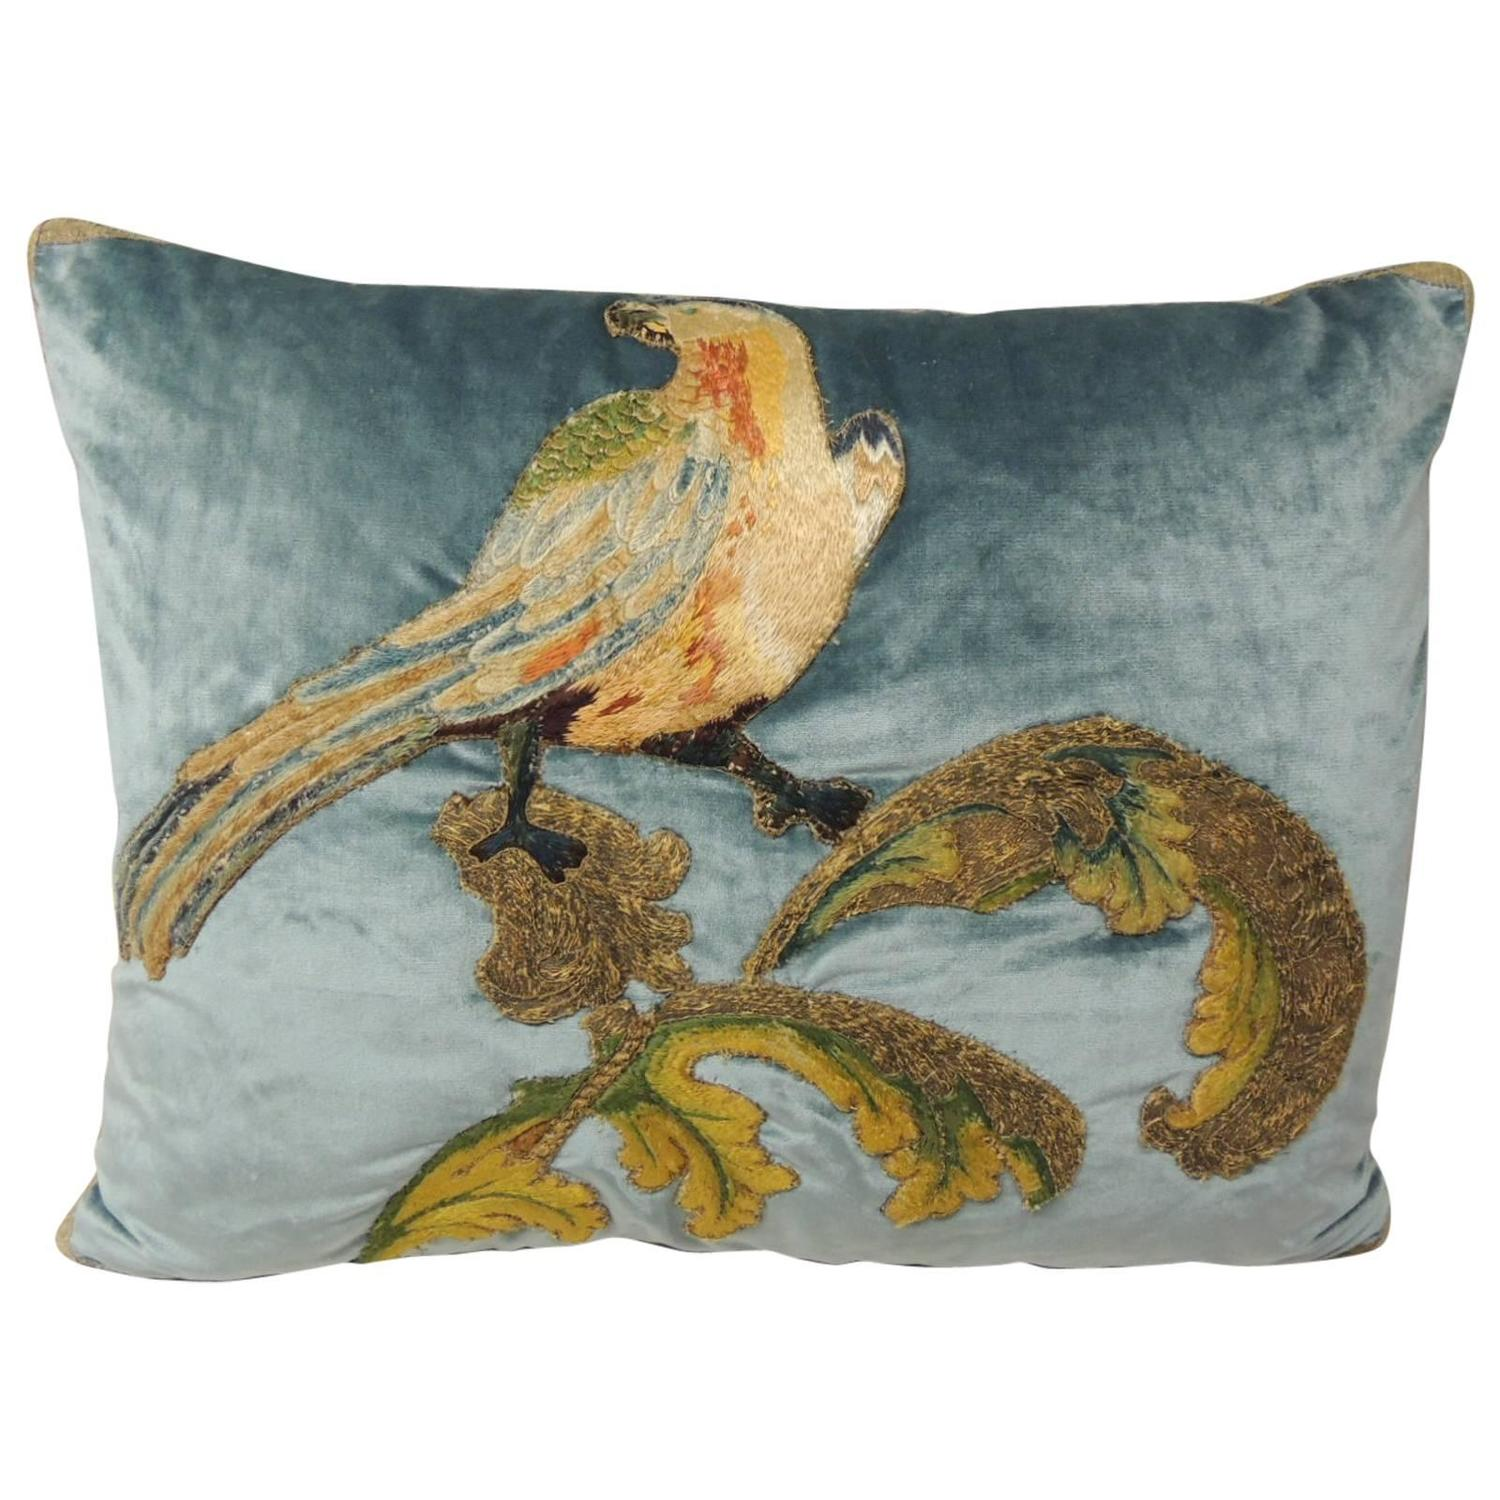 Yellow Bird Throw Pillows : Silk Velvet Yellow Bird Applique Bolster Pillow at 1stdibs